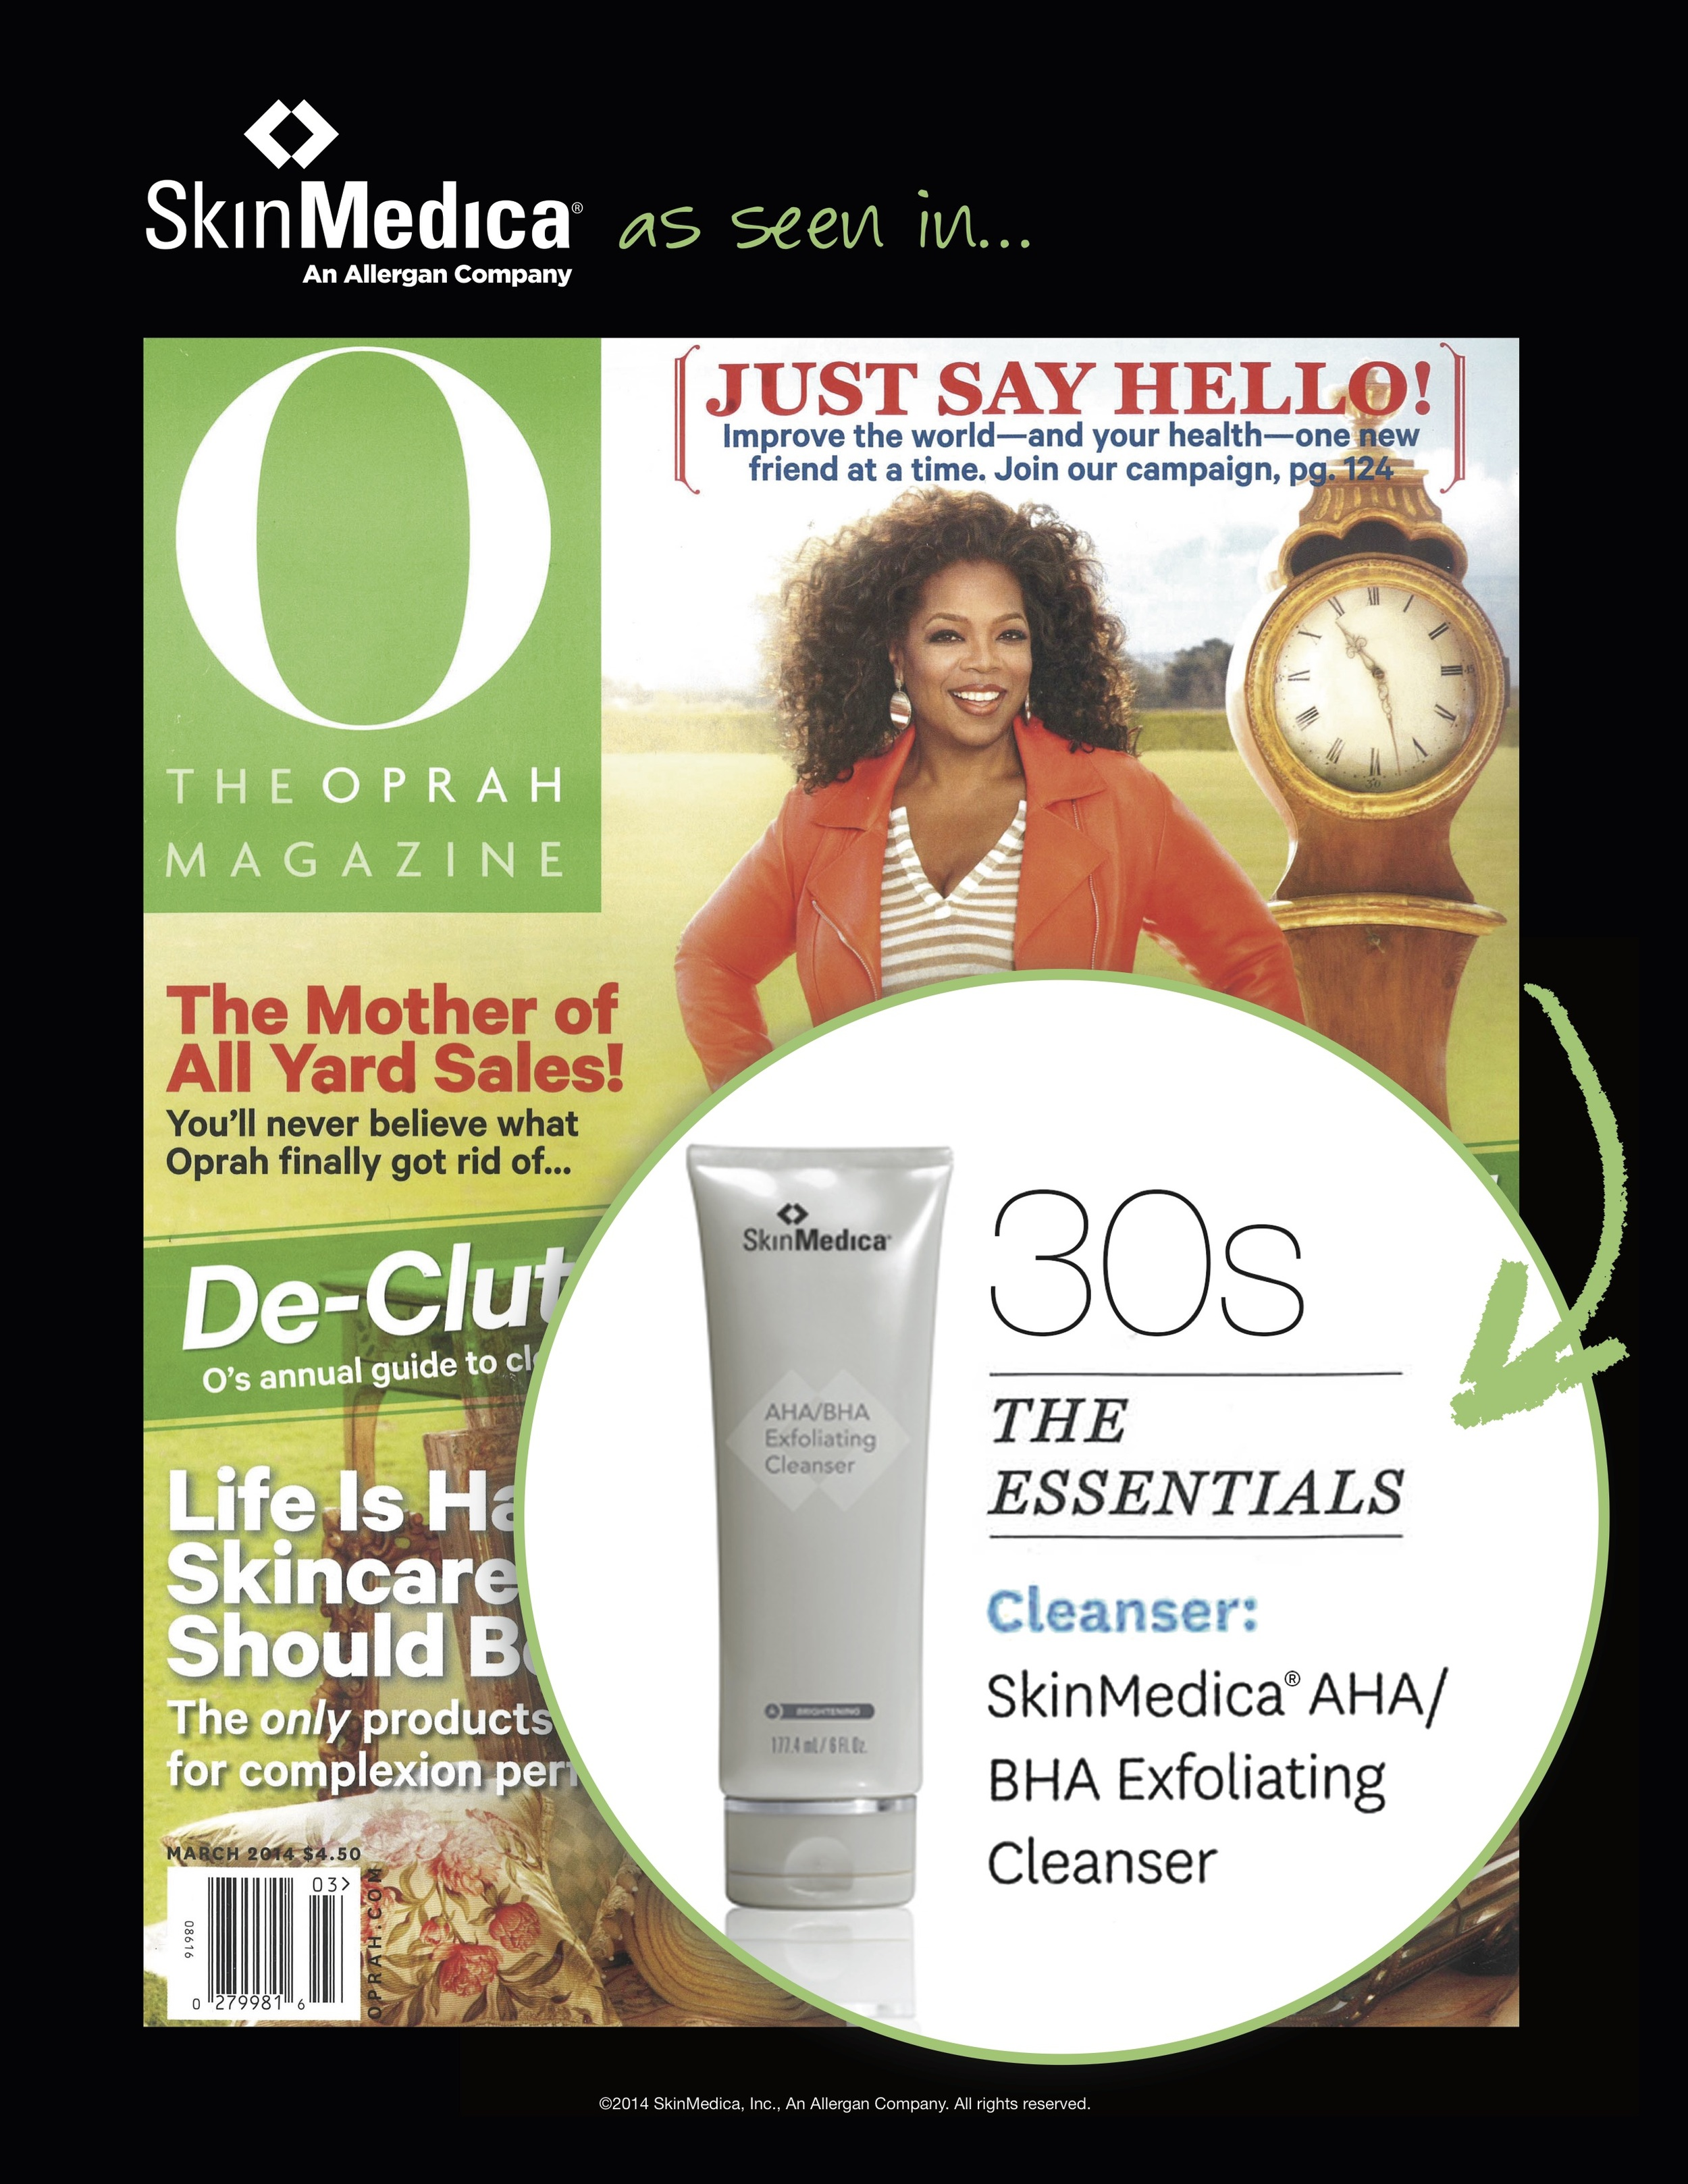 The-Oprah-Magazine-Aha-Bha-Exfoliating-Cleanser.jpg